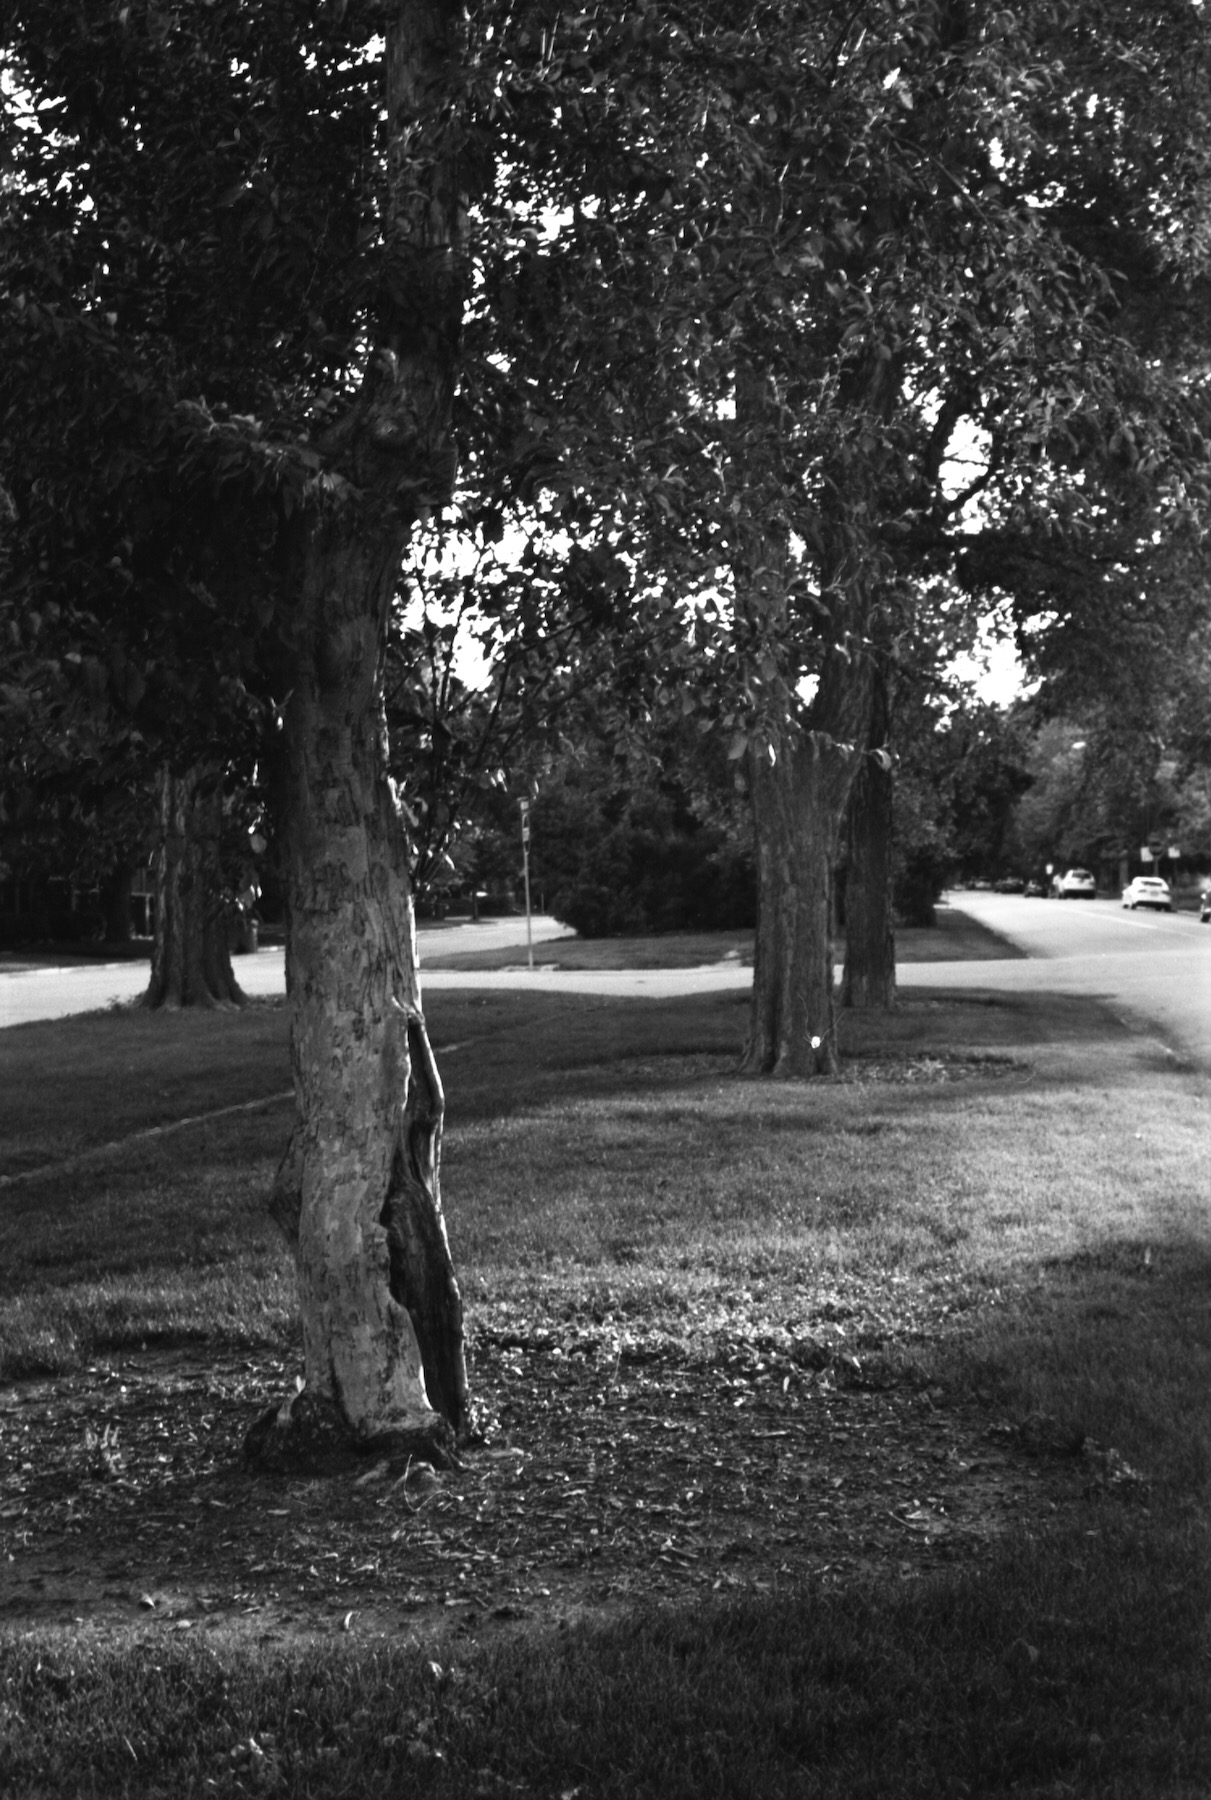 Photo by @ShellySometimes   Nikon F100 with Nikkor 50mm lens at 80 ISO  Developed in Ilfosol 3, 1+9, at 68ºF for 5 minutes. Gentle agitation first minute, four inversions at the top of every minute after. Water-only stop bath, fixed for five minutes with Rapid Fixer.